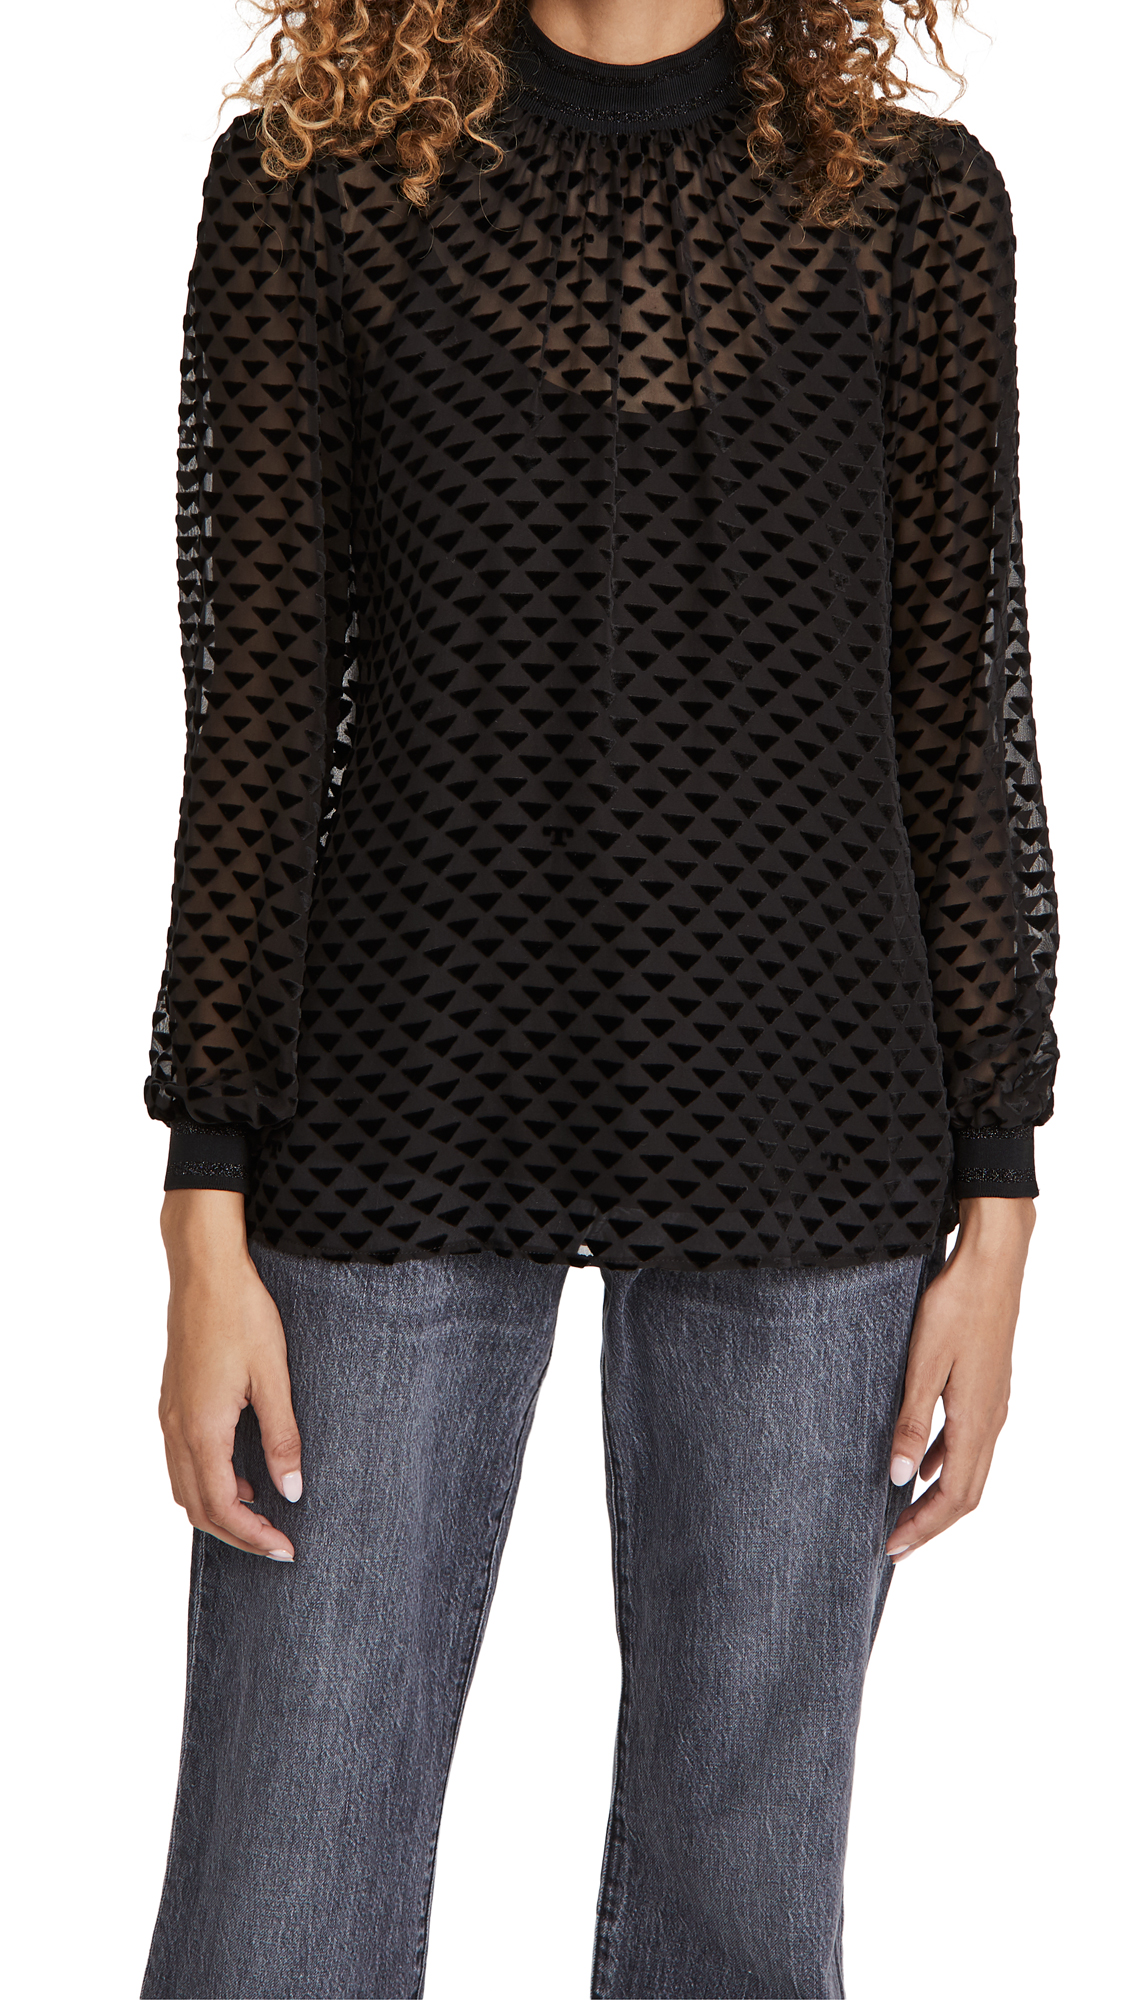 Tory Burch Velvet Devore Top